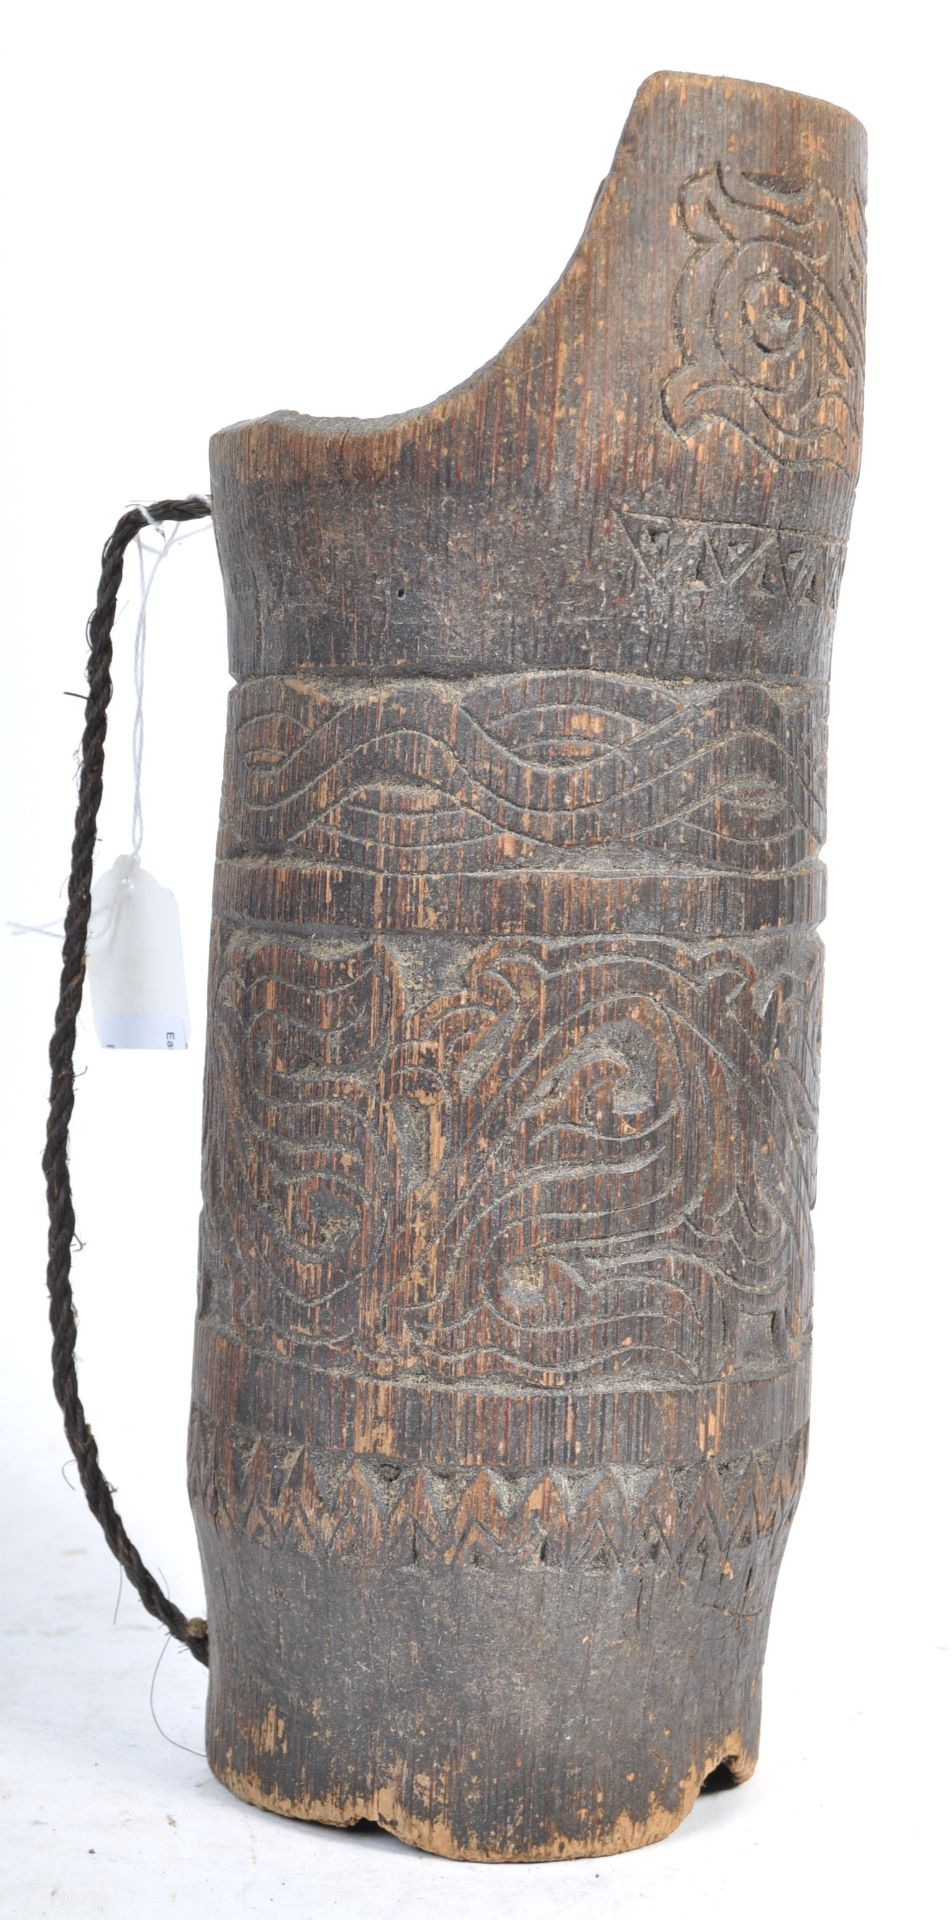 Los 551 - TRIBAL ANTIQUITIES - 19TH CENTURY INDONESIAN HEADHUNTER'S QUIVER